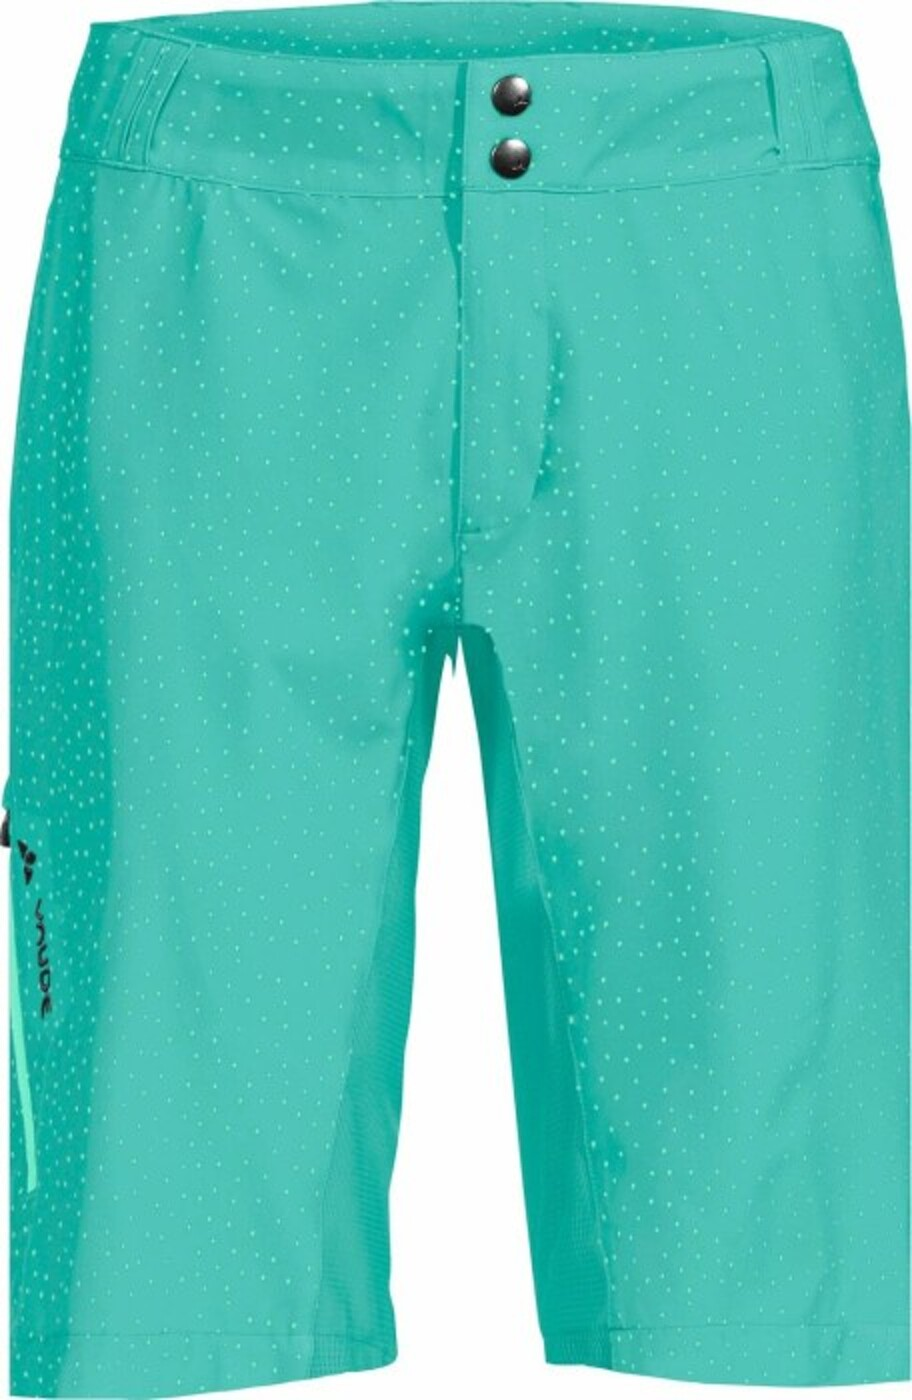 VAUDE WO LIGURE SHORTS, NICKEL GREEN, 44 - Damen